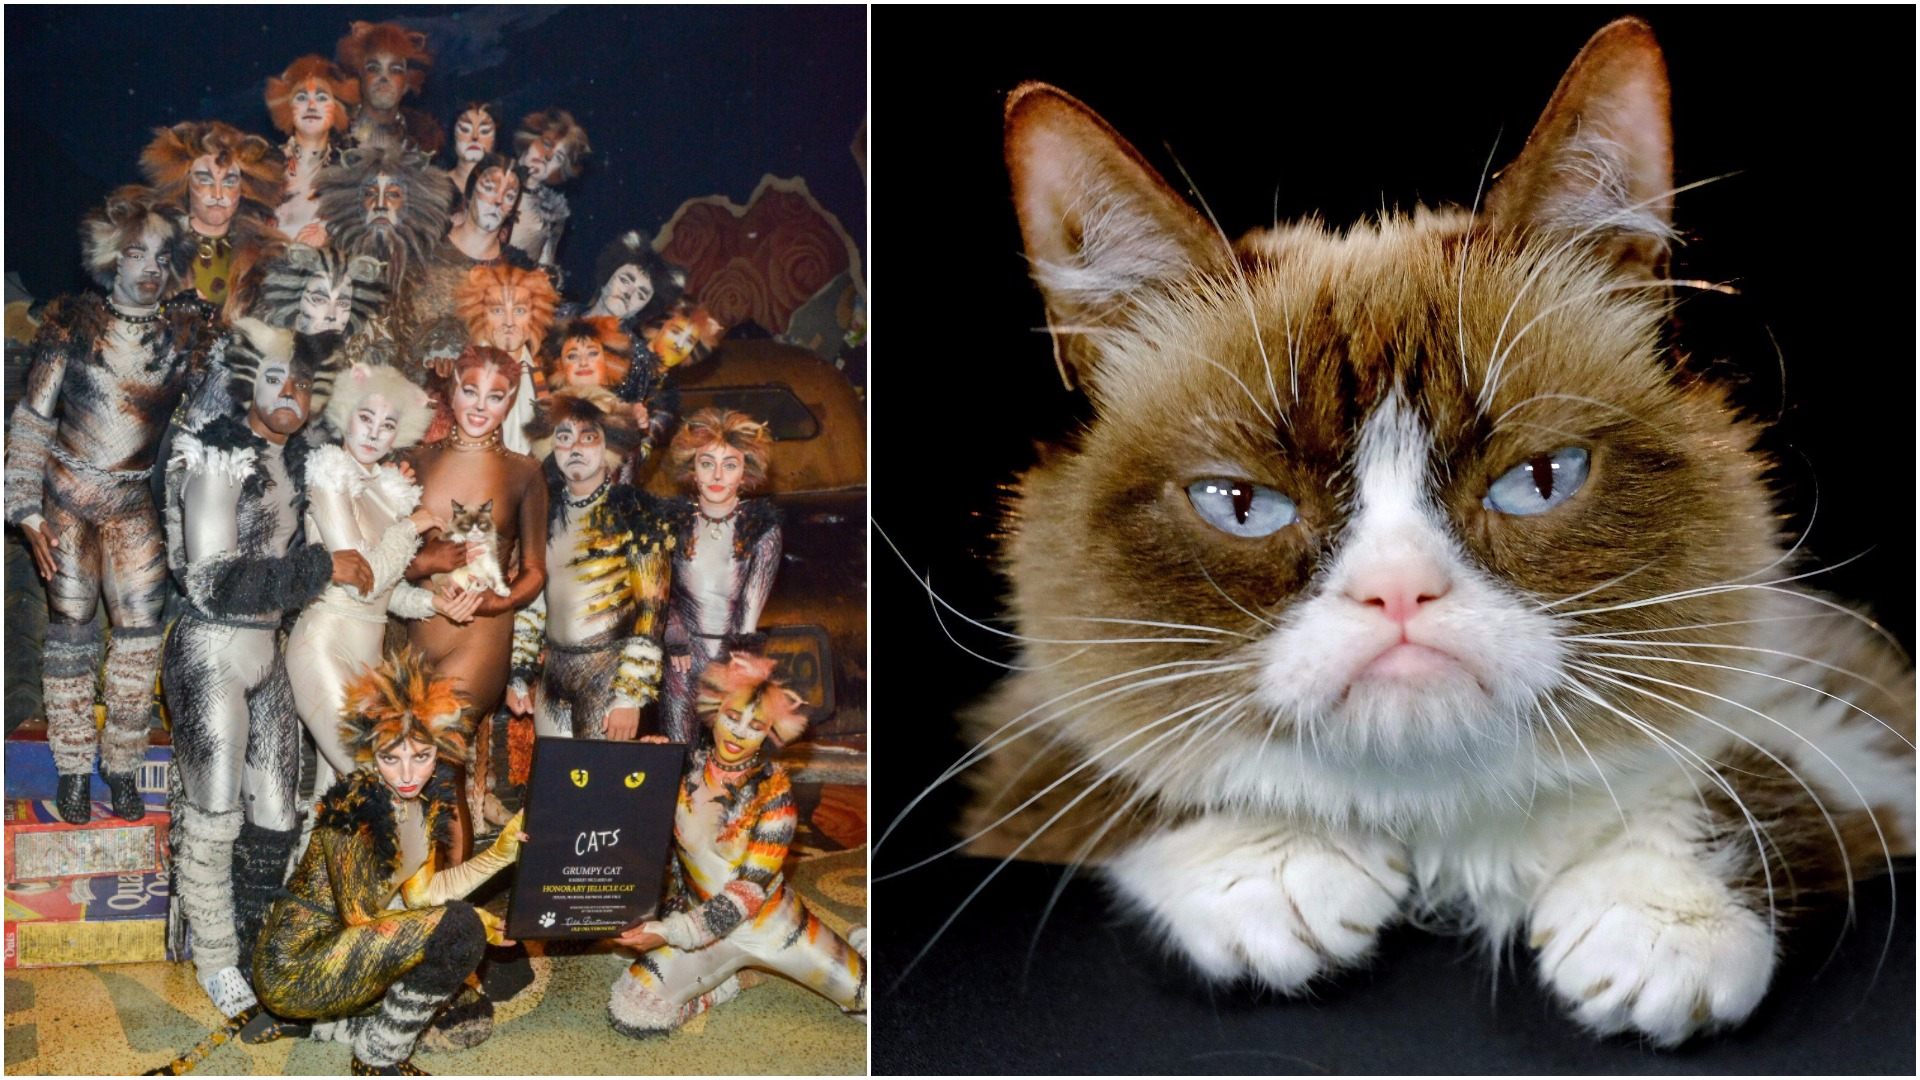 Grumpy Cat visited the Broadway cast of Cats but failed to bond with any of them